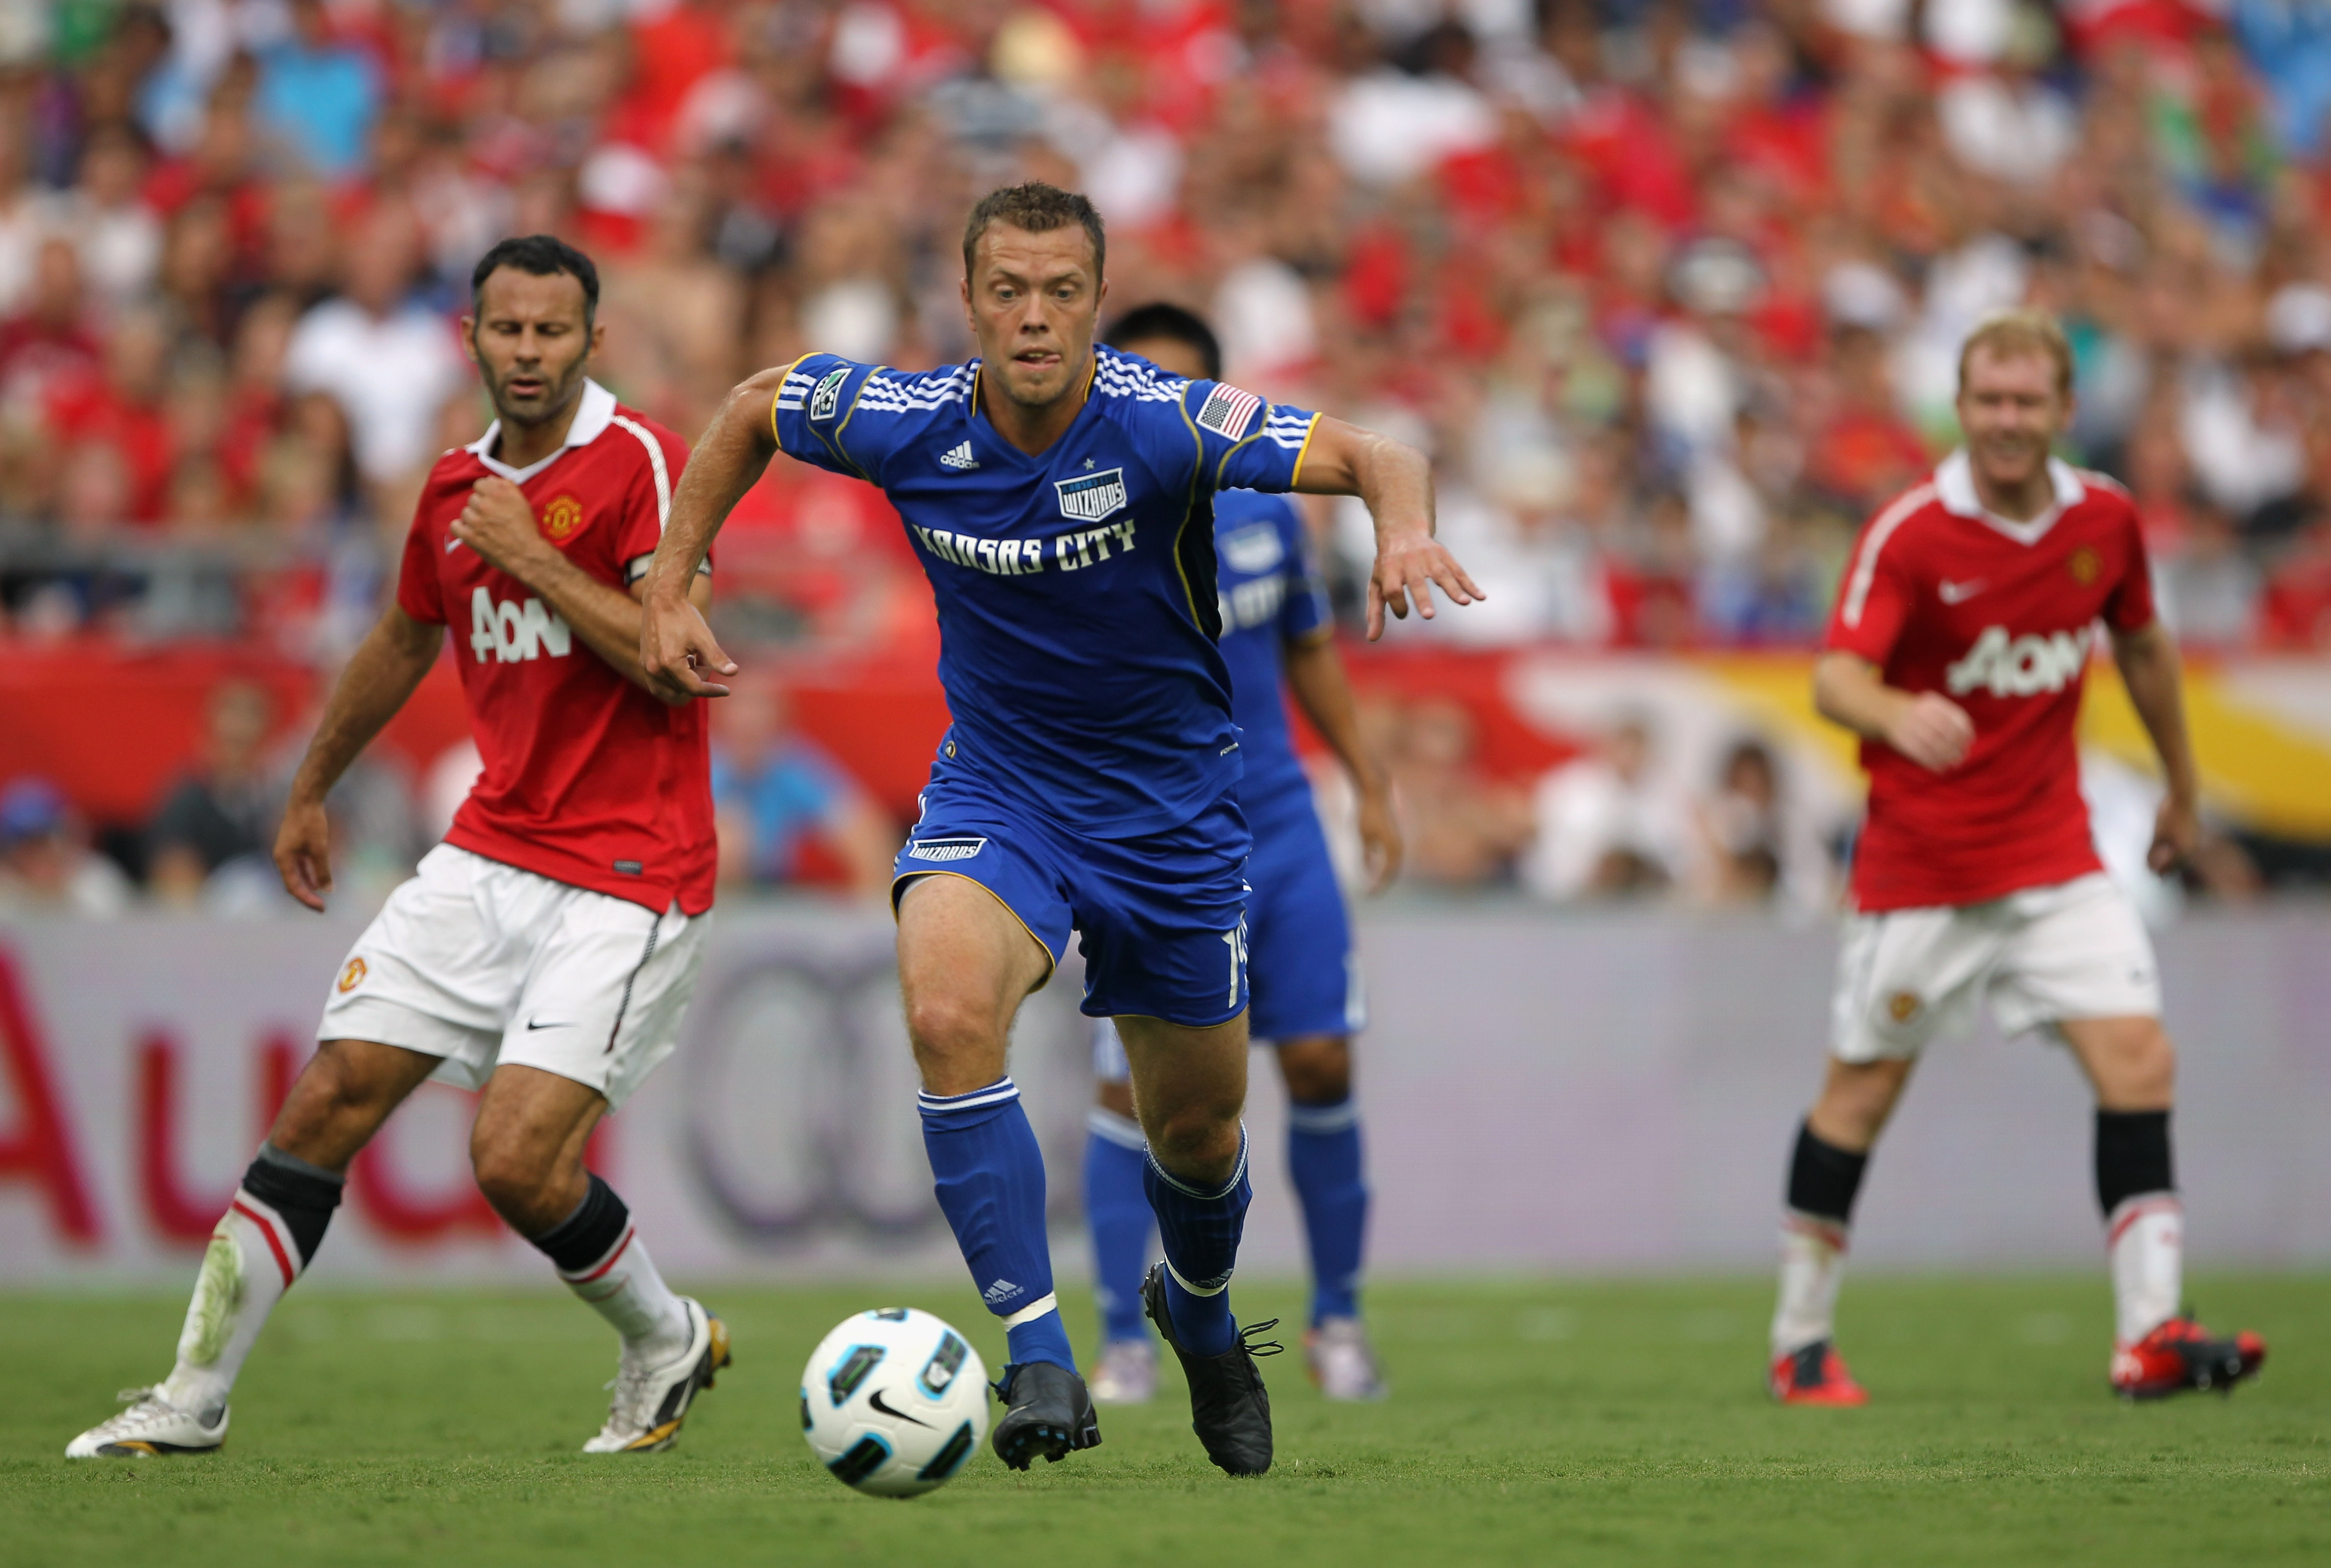 KANSAS CITY, MO - JULY 25:  Jack Jewsbury #14 of the Kansas City Wizards controls the ball during the game against Manchester United at Arrowhead Stadium on July 25, 2010 in Kansas City, Missouri.  (Photo by Jamie Squire/Getty Images)